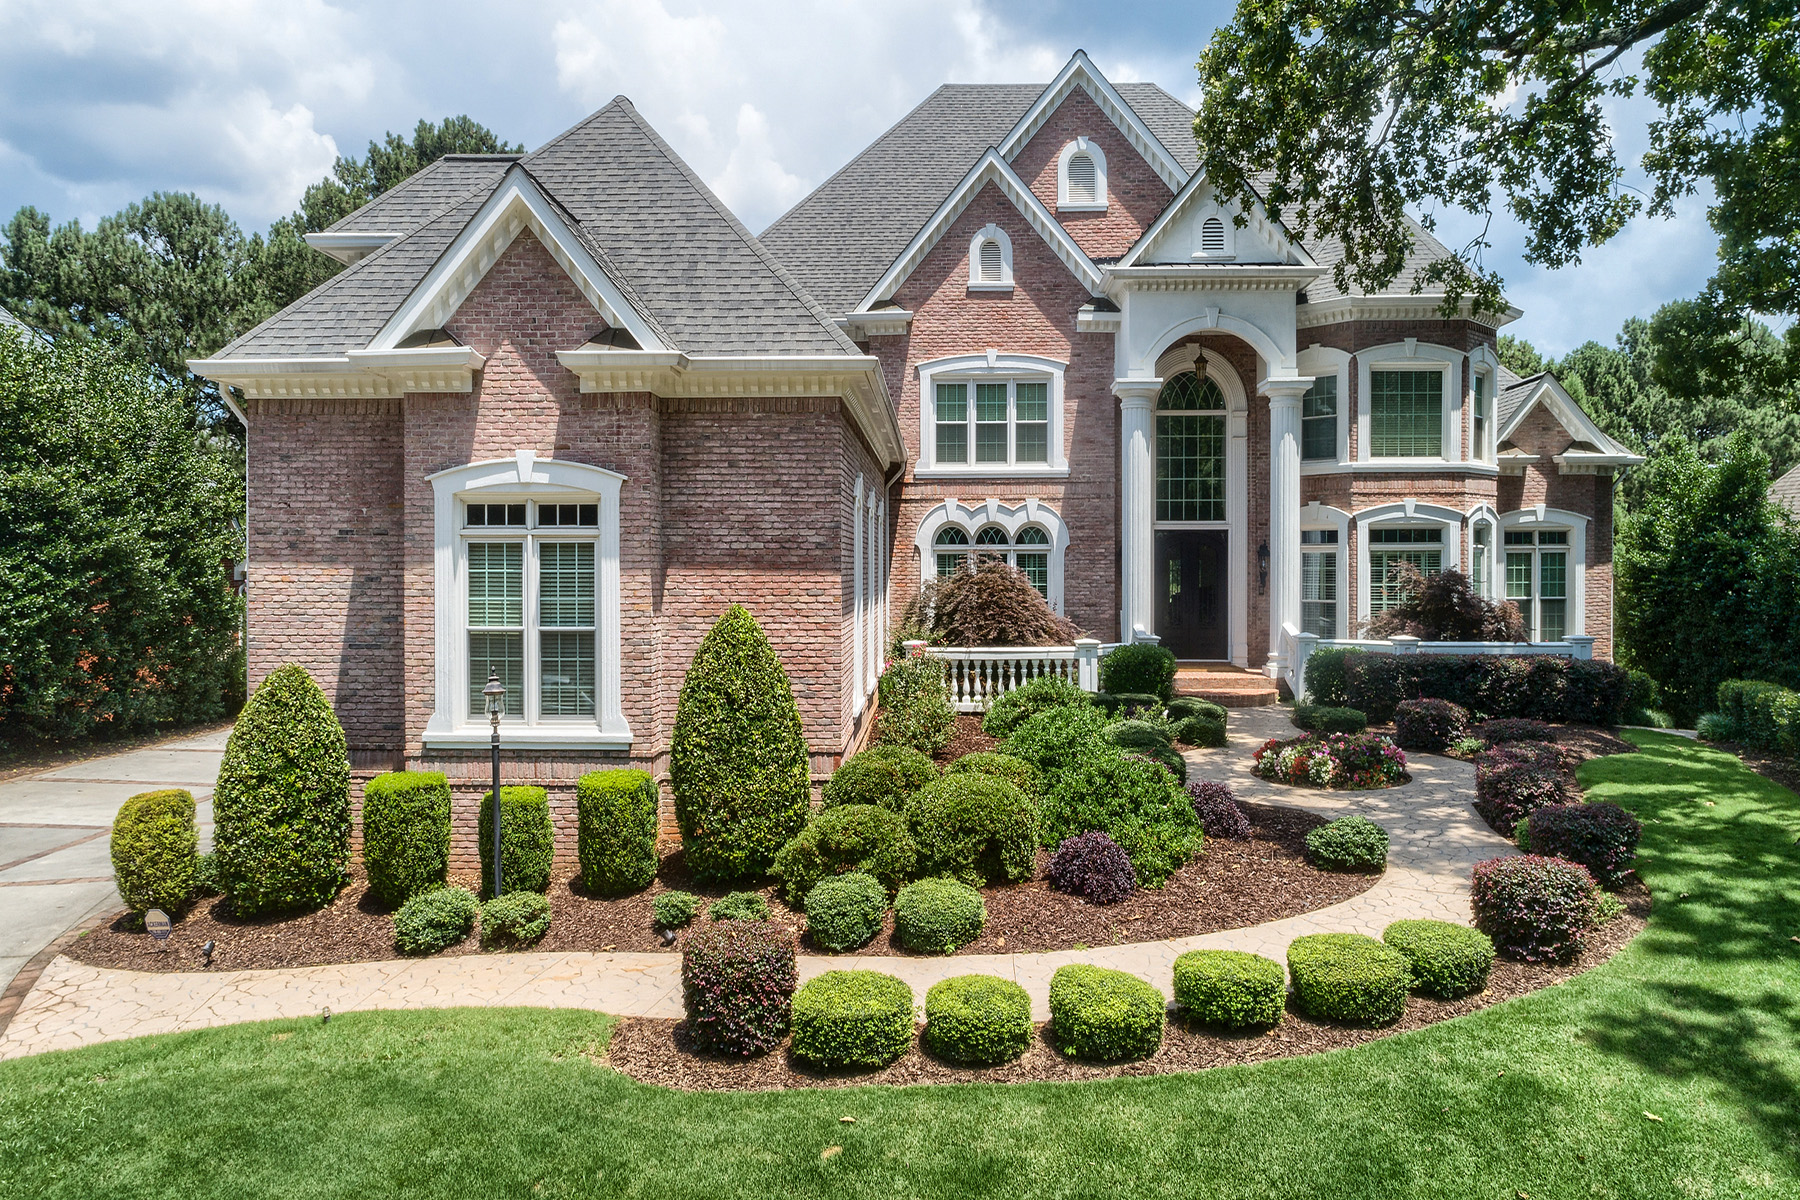 Single Family Home for Sale at Incredible Estate in St Ives Country Club 1826 Ballybunion Drive Johns Creek, Georgia 30097 United States